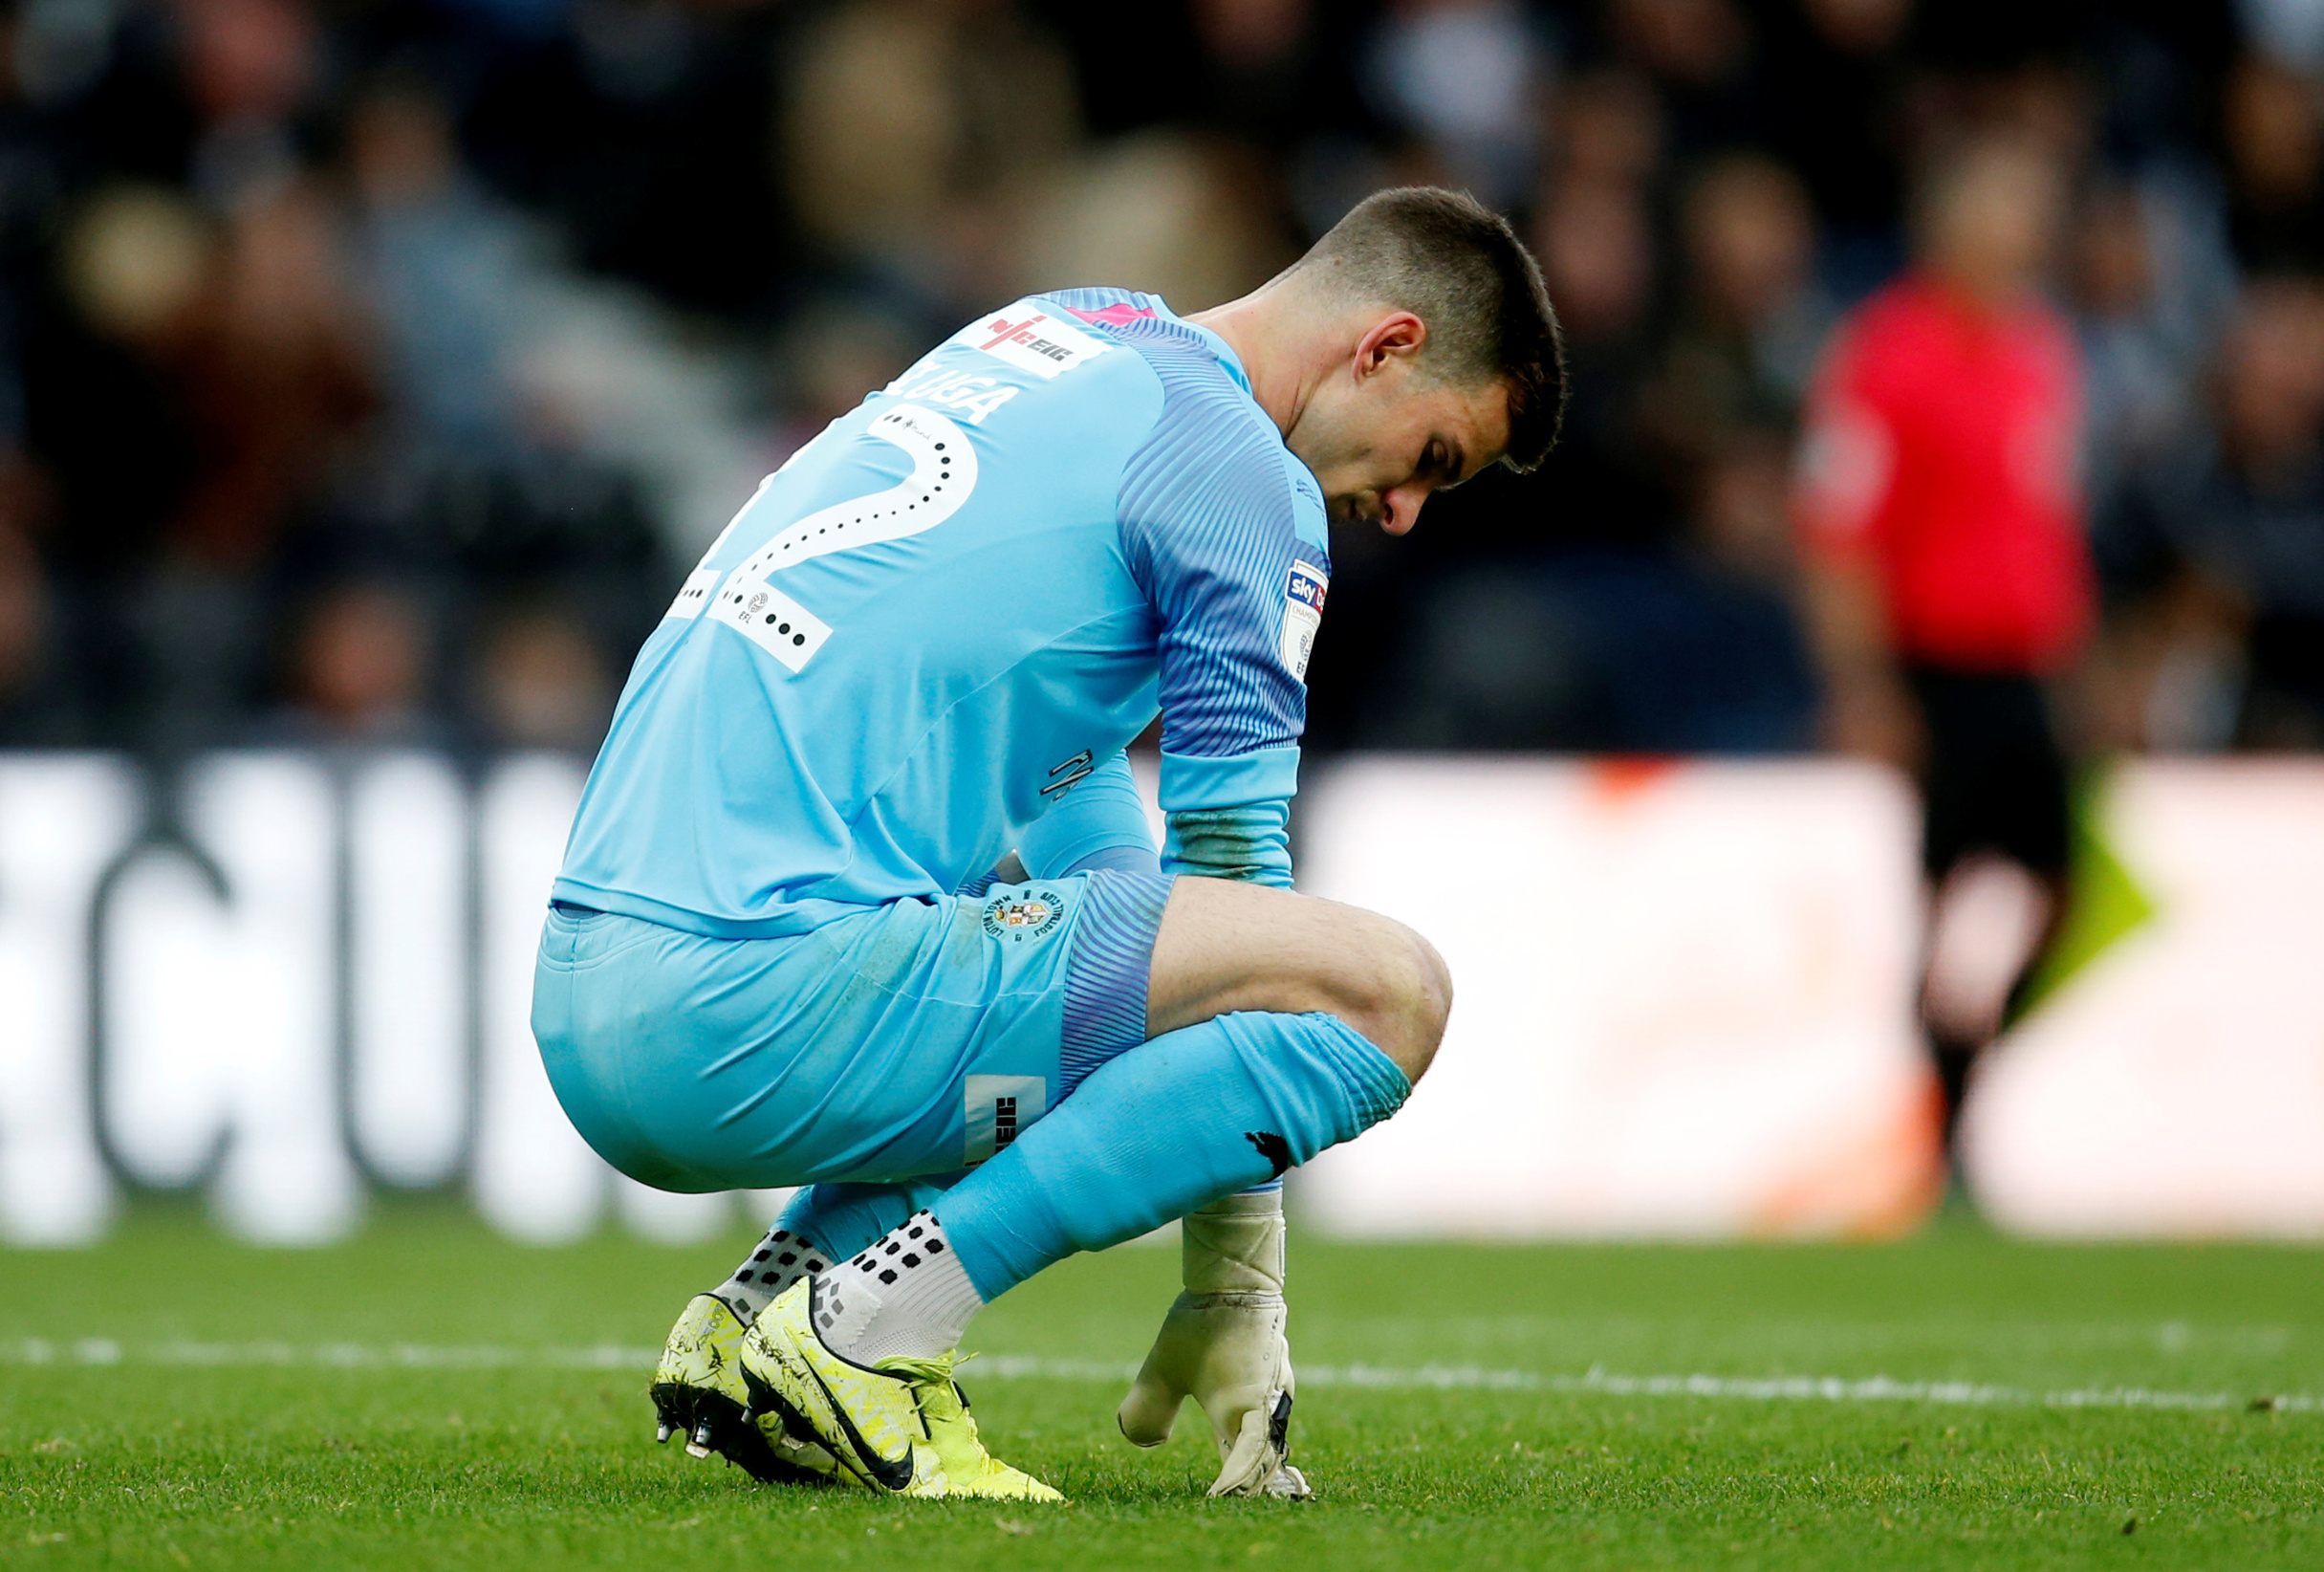 Soccer Football - Championship - Derby County v Luton Town - Pride Park, Derby, Britain - October 5, 2019  Luton Town's Simon Sluga looks dejected   Action Images/Ed Sykes  EDITORIAL USE ONLY. No use with unauthorized audio, video, data, fixture lists, club/league logos or